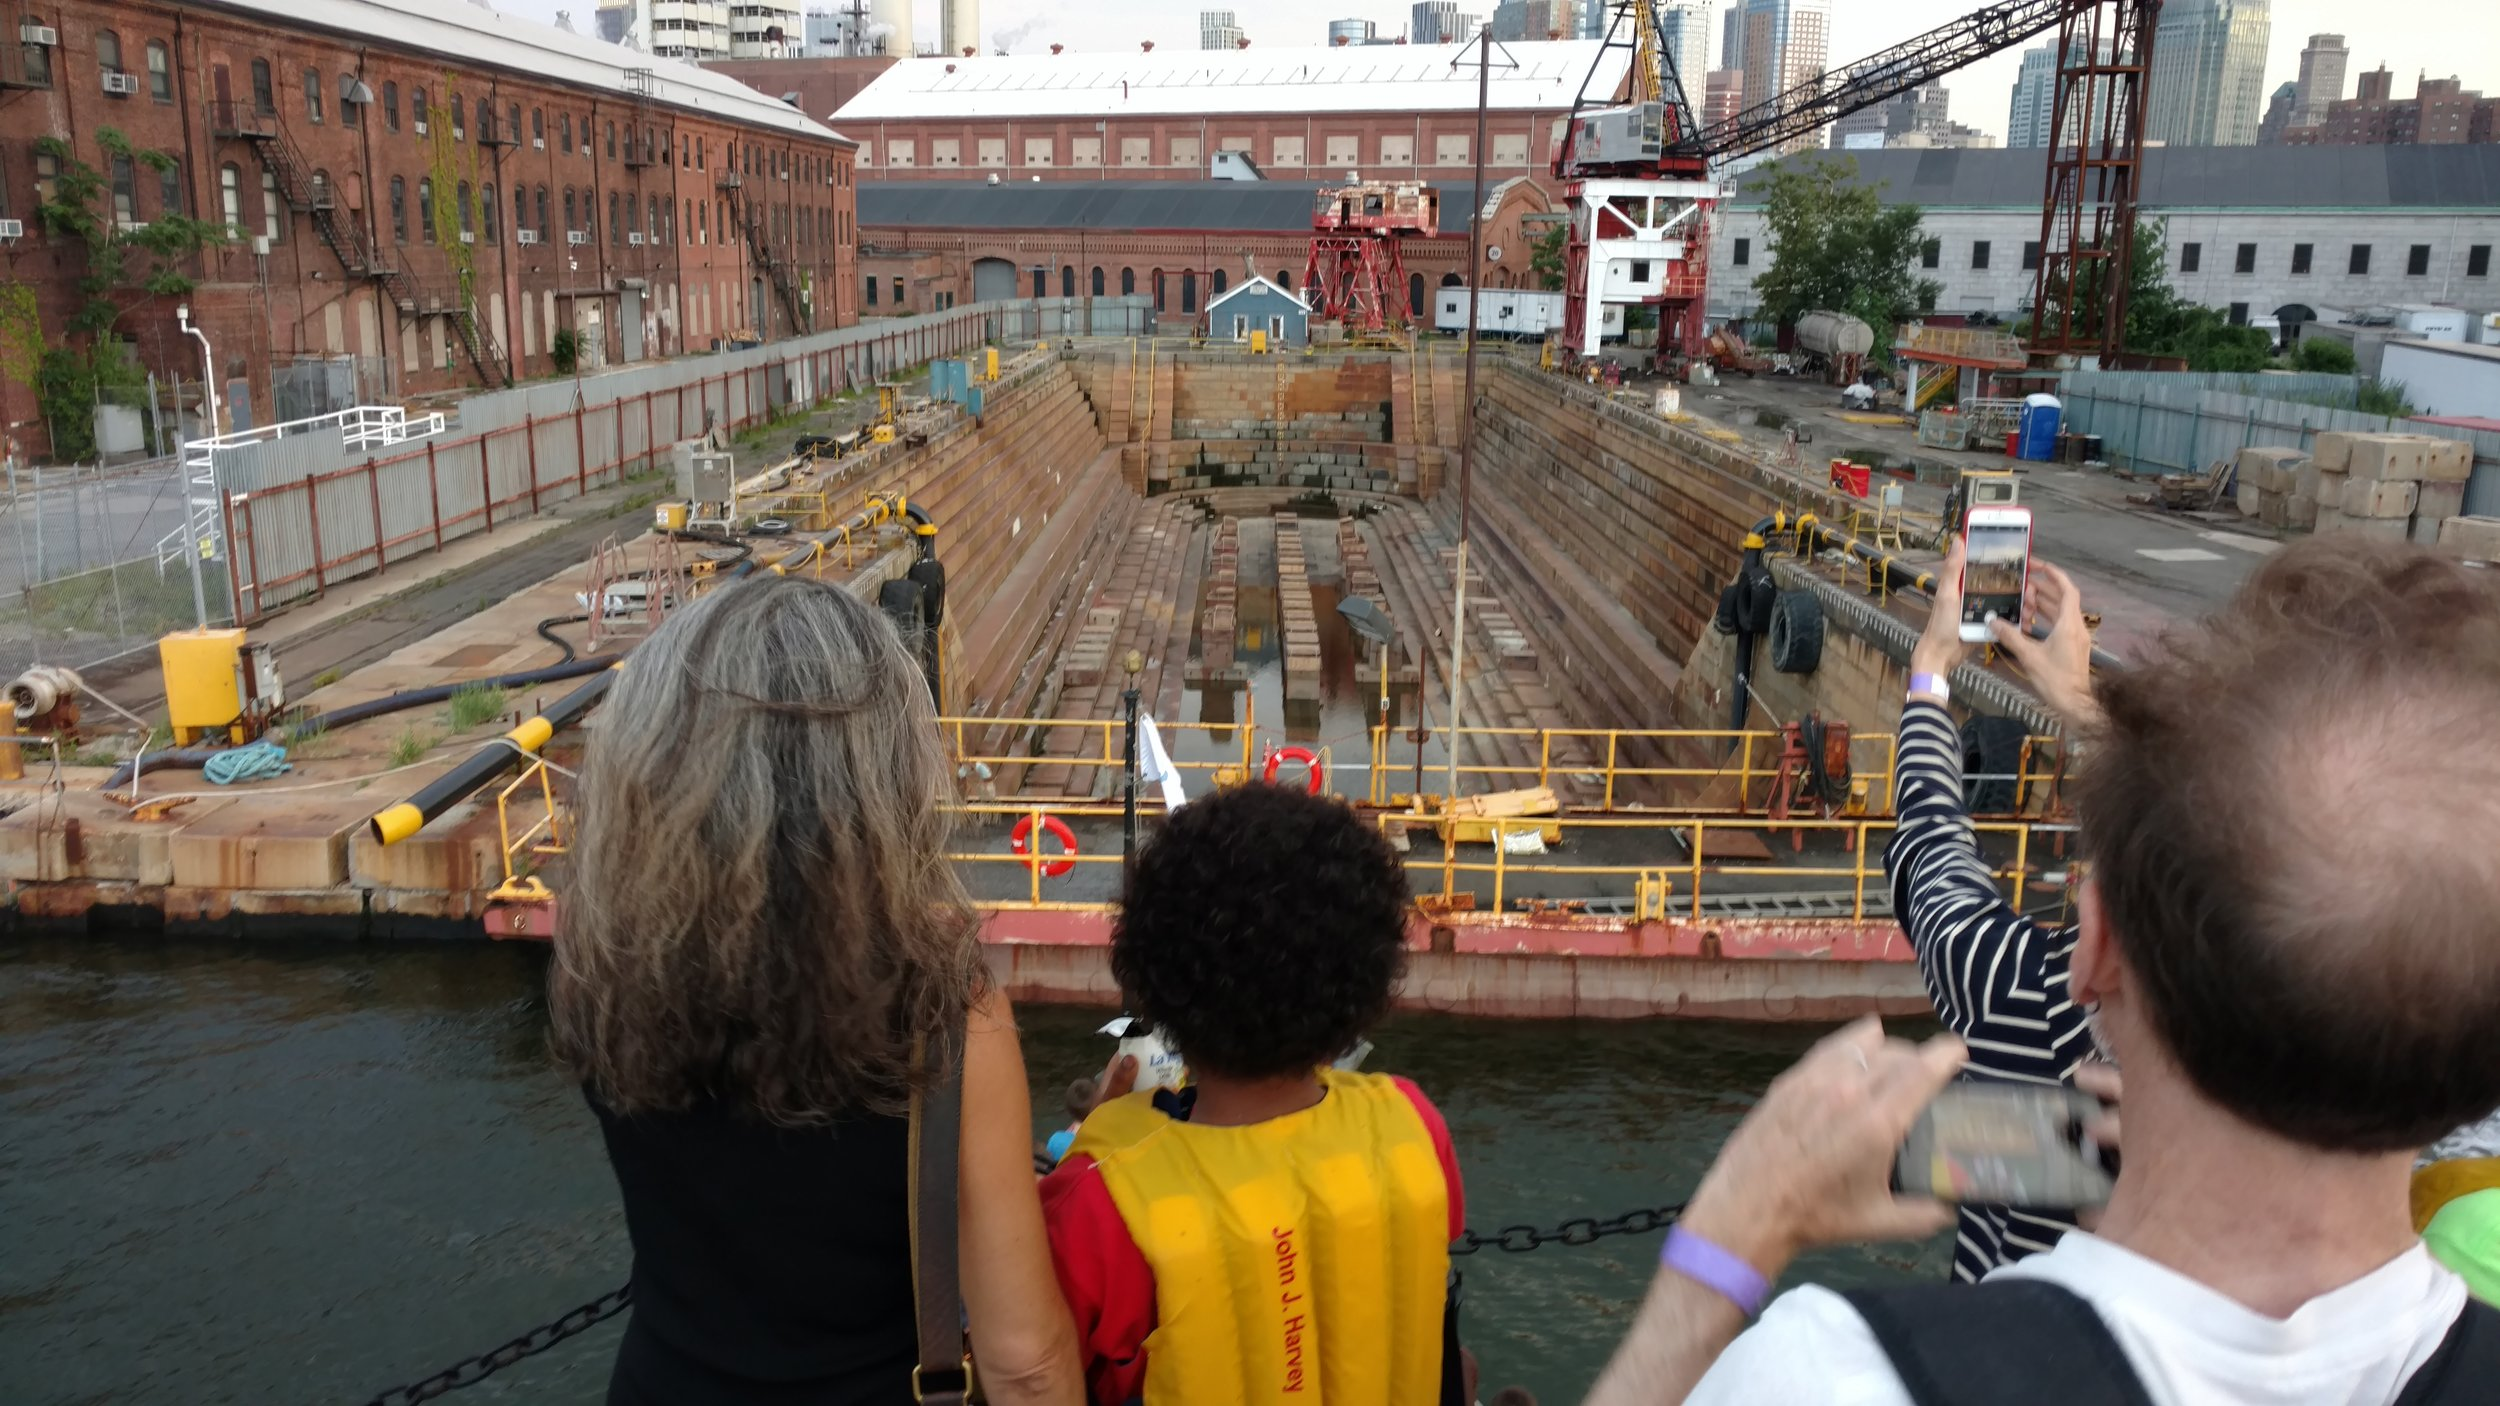 Looking into Dry Dock 1, where the MARY A. WHALEN was repaired in 2007, during harbor tour on fireboat JOHN J. HARVEY